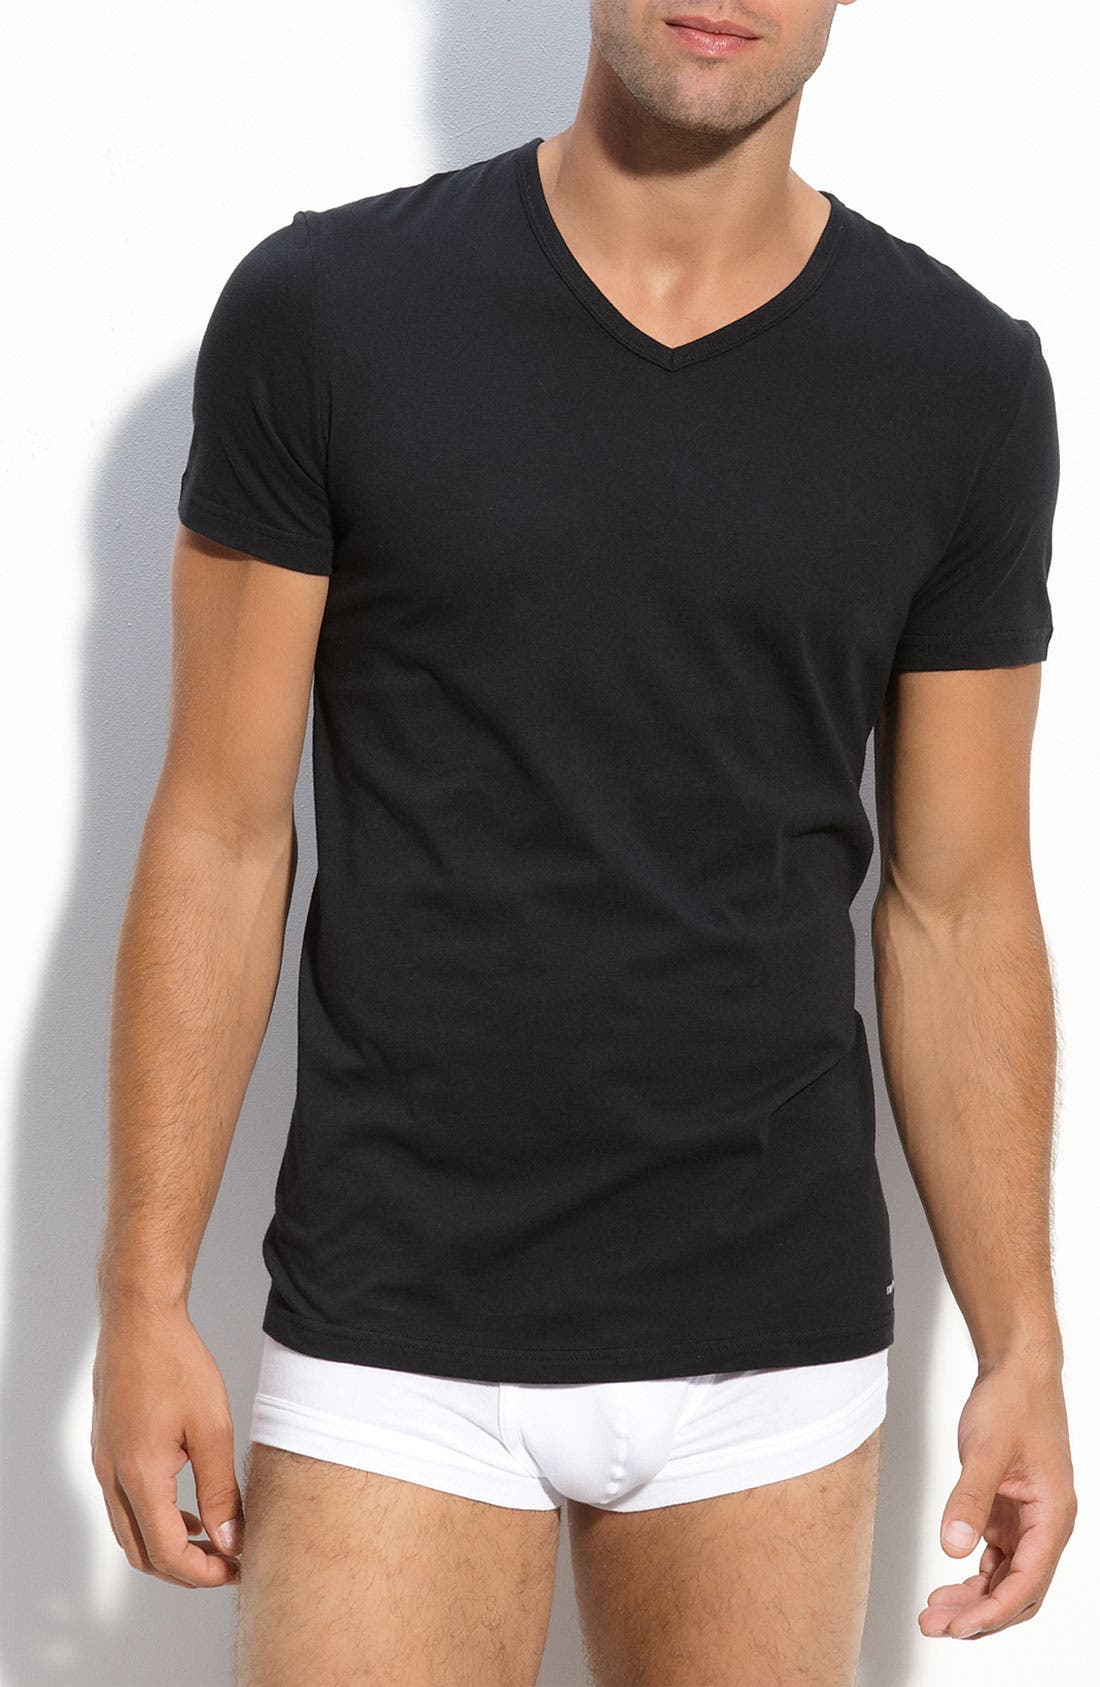 Alternate Image 1 Selected - Emporio Armani V-Neck T-Shirt (3-Pack)